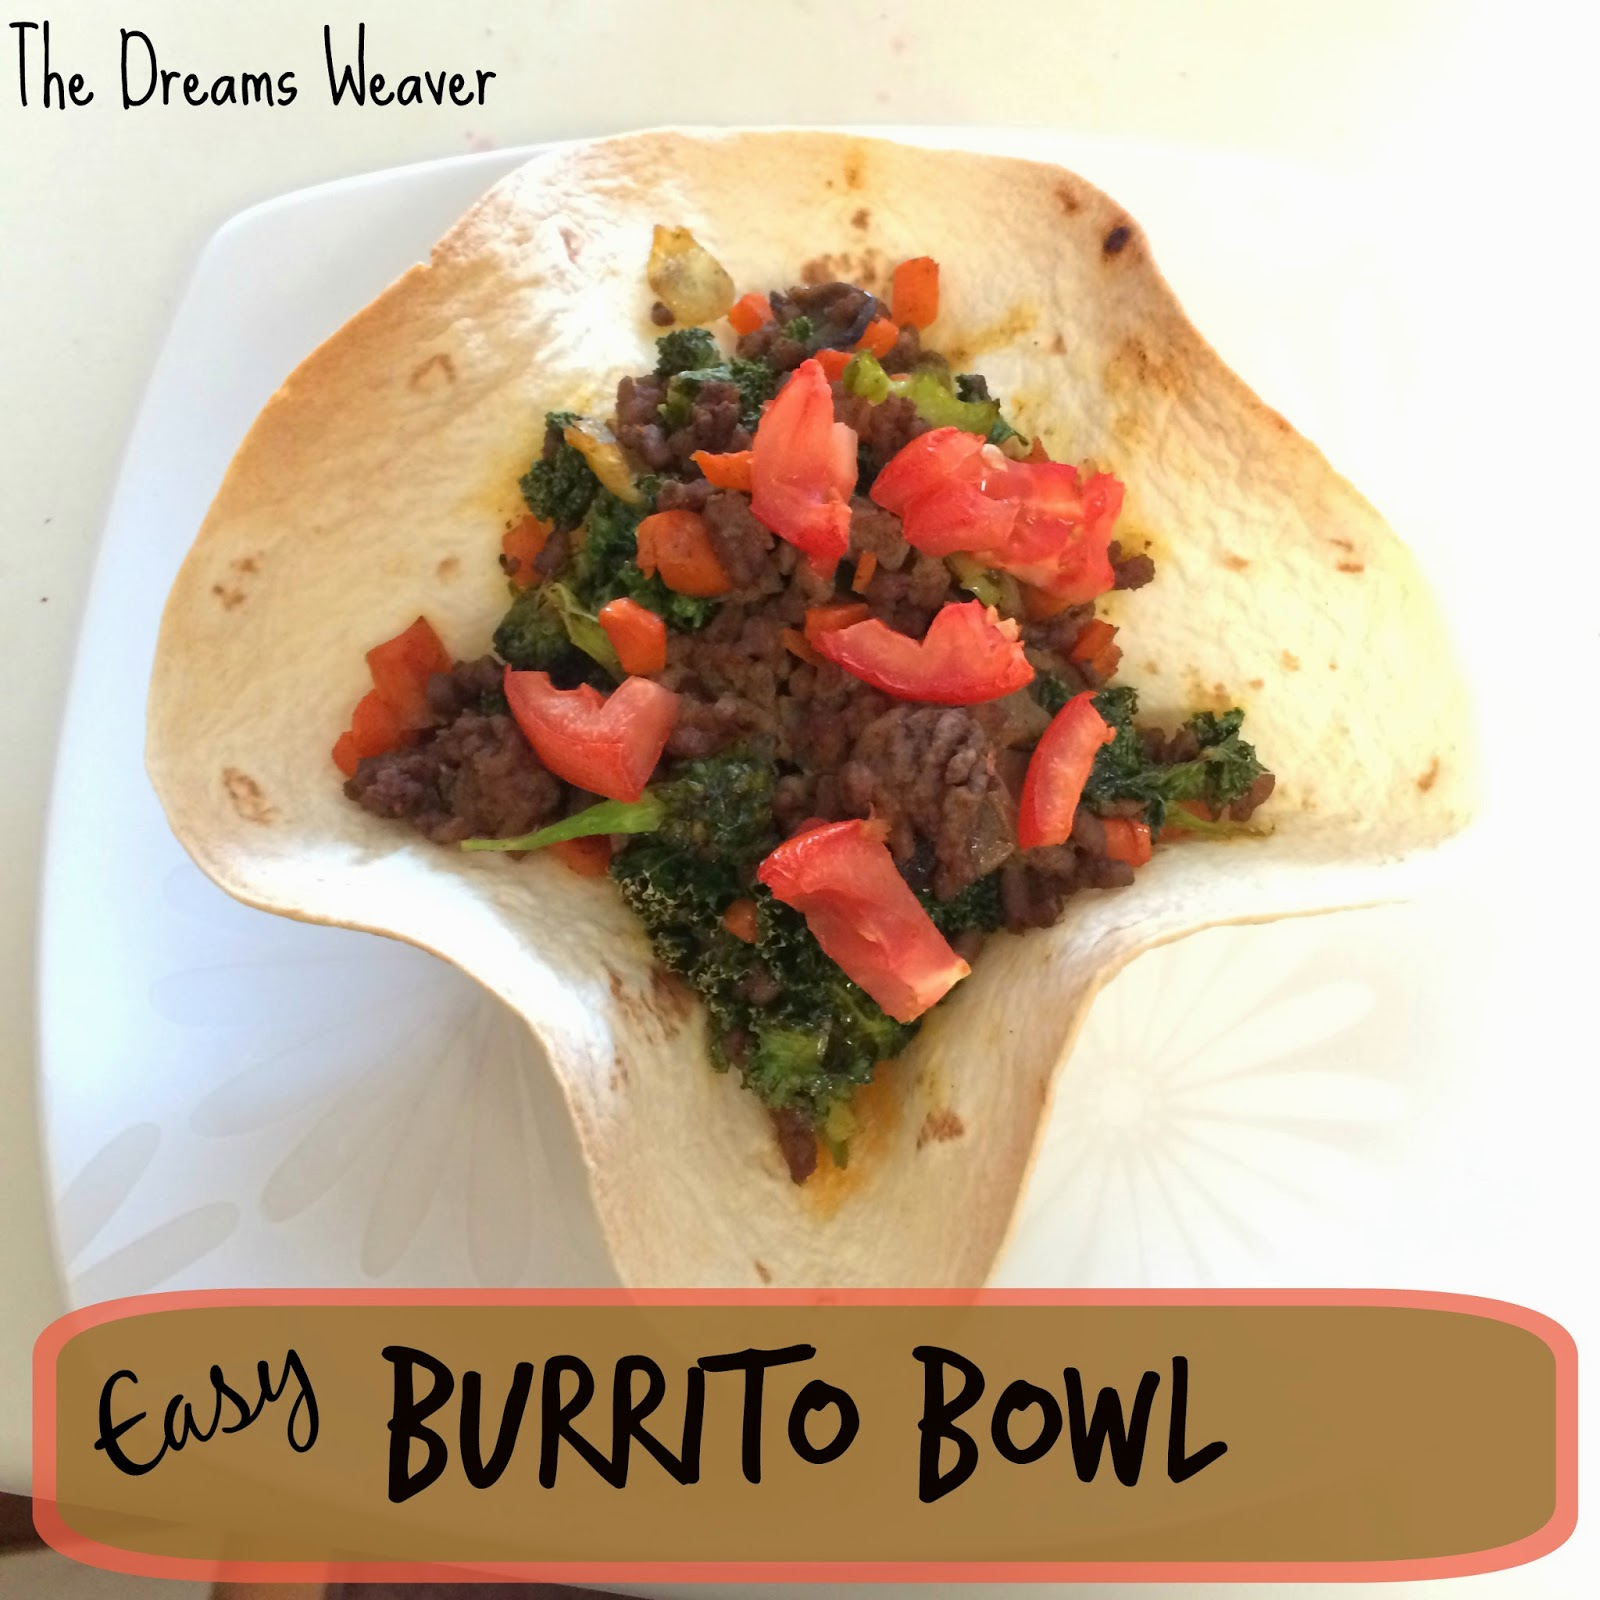 Easy Burrito Bowl~ The Dreams Weaver